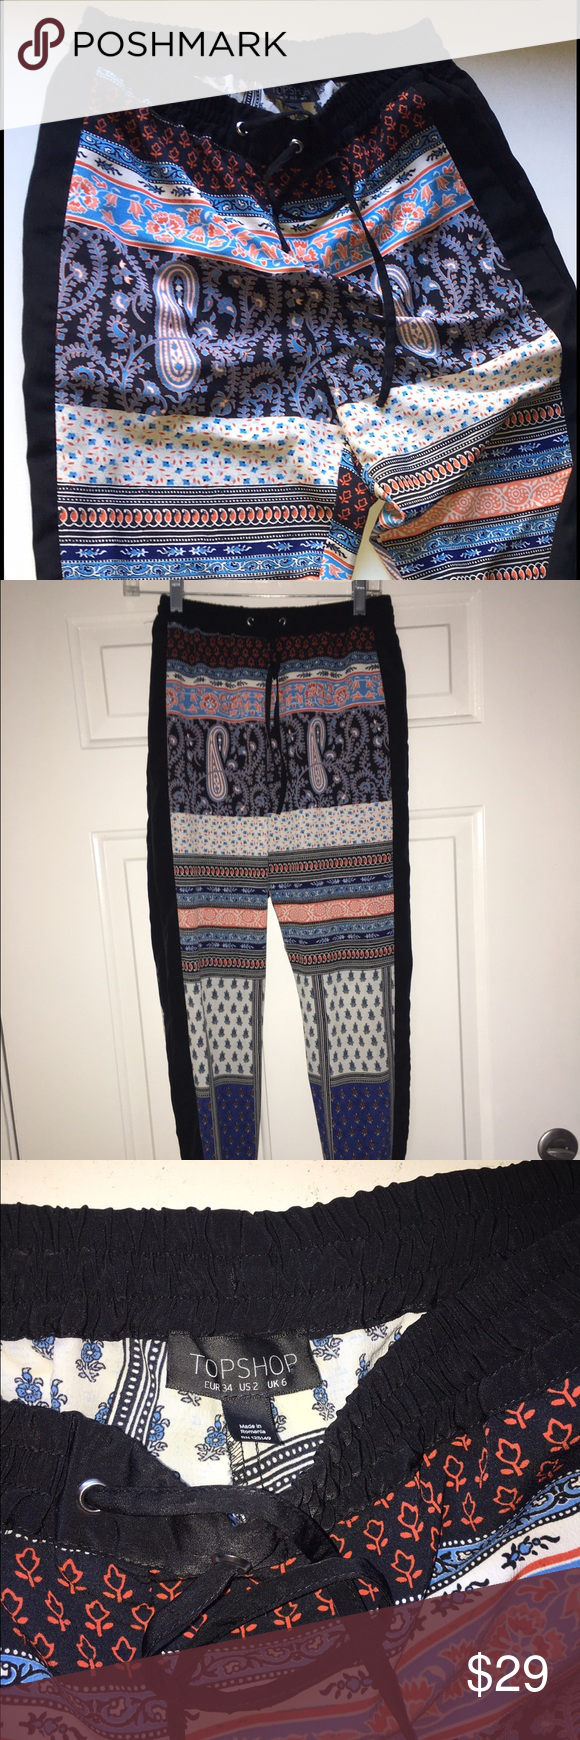 TopShop Blue Patch Printed Jogger pants Luxe Printed Jogger Pants from TopShop Topshop Pants Track Pants & Joggers